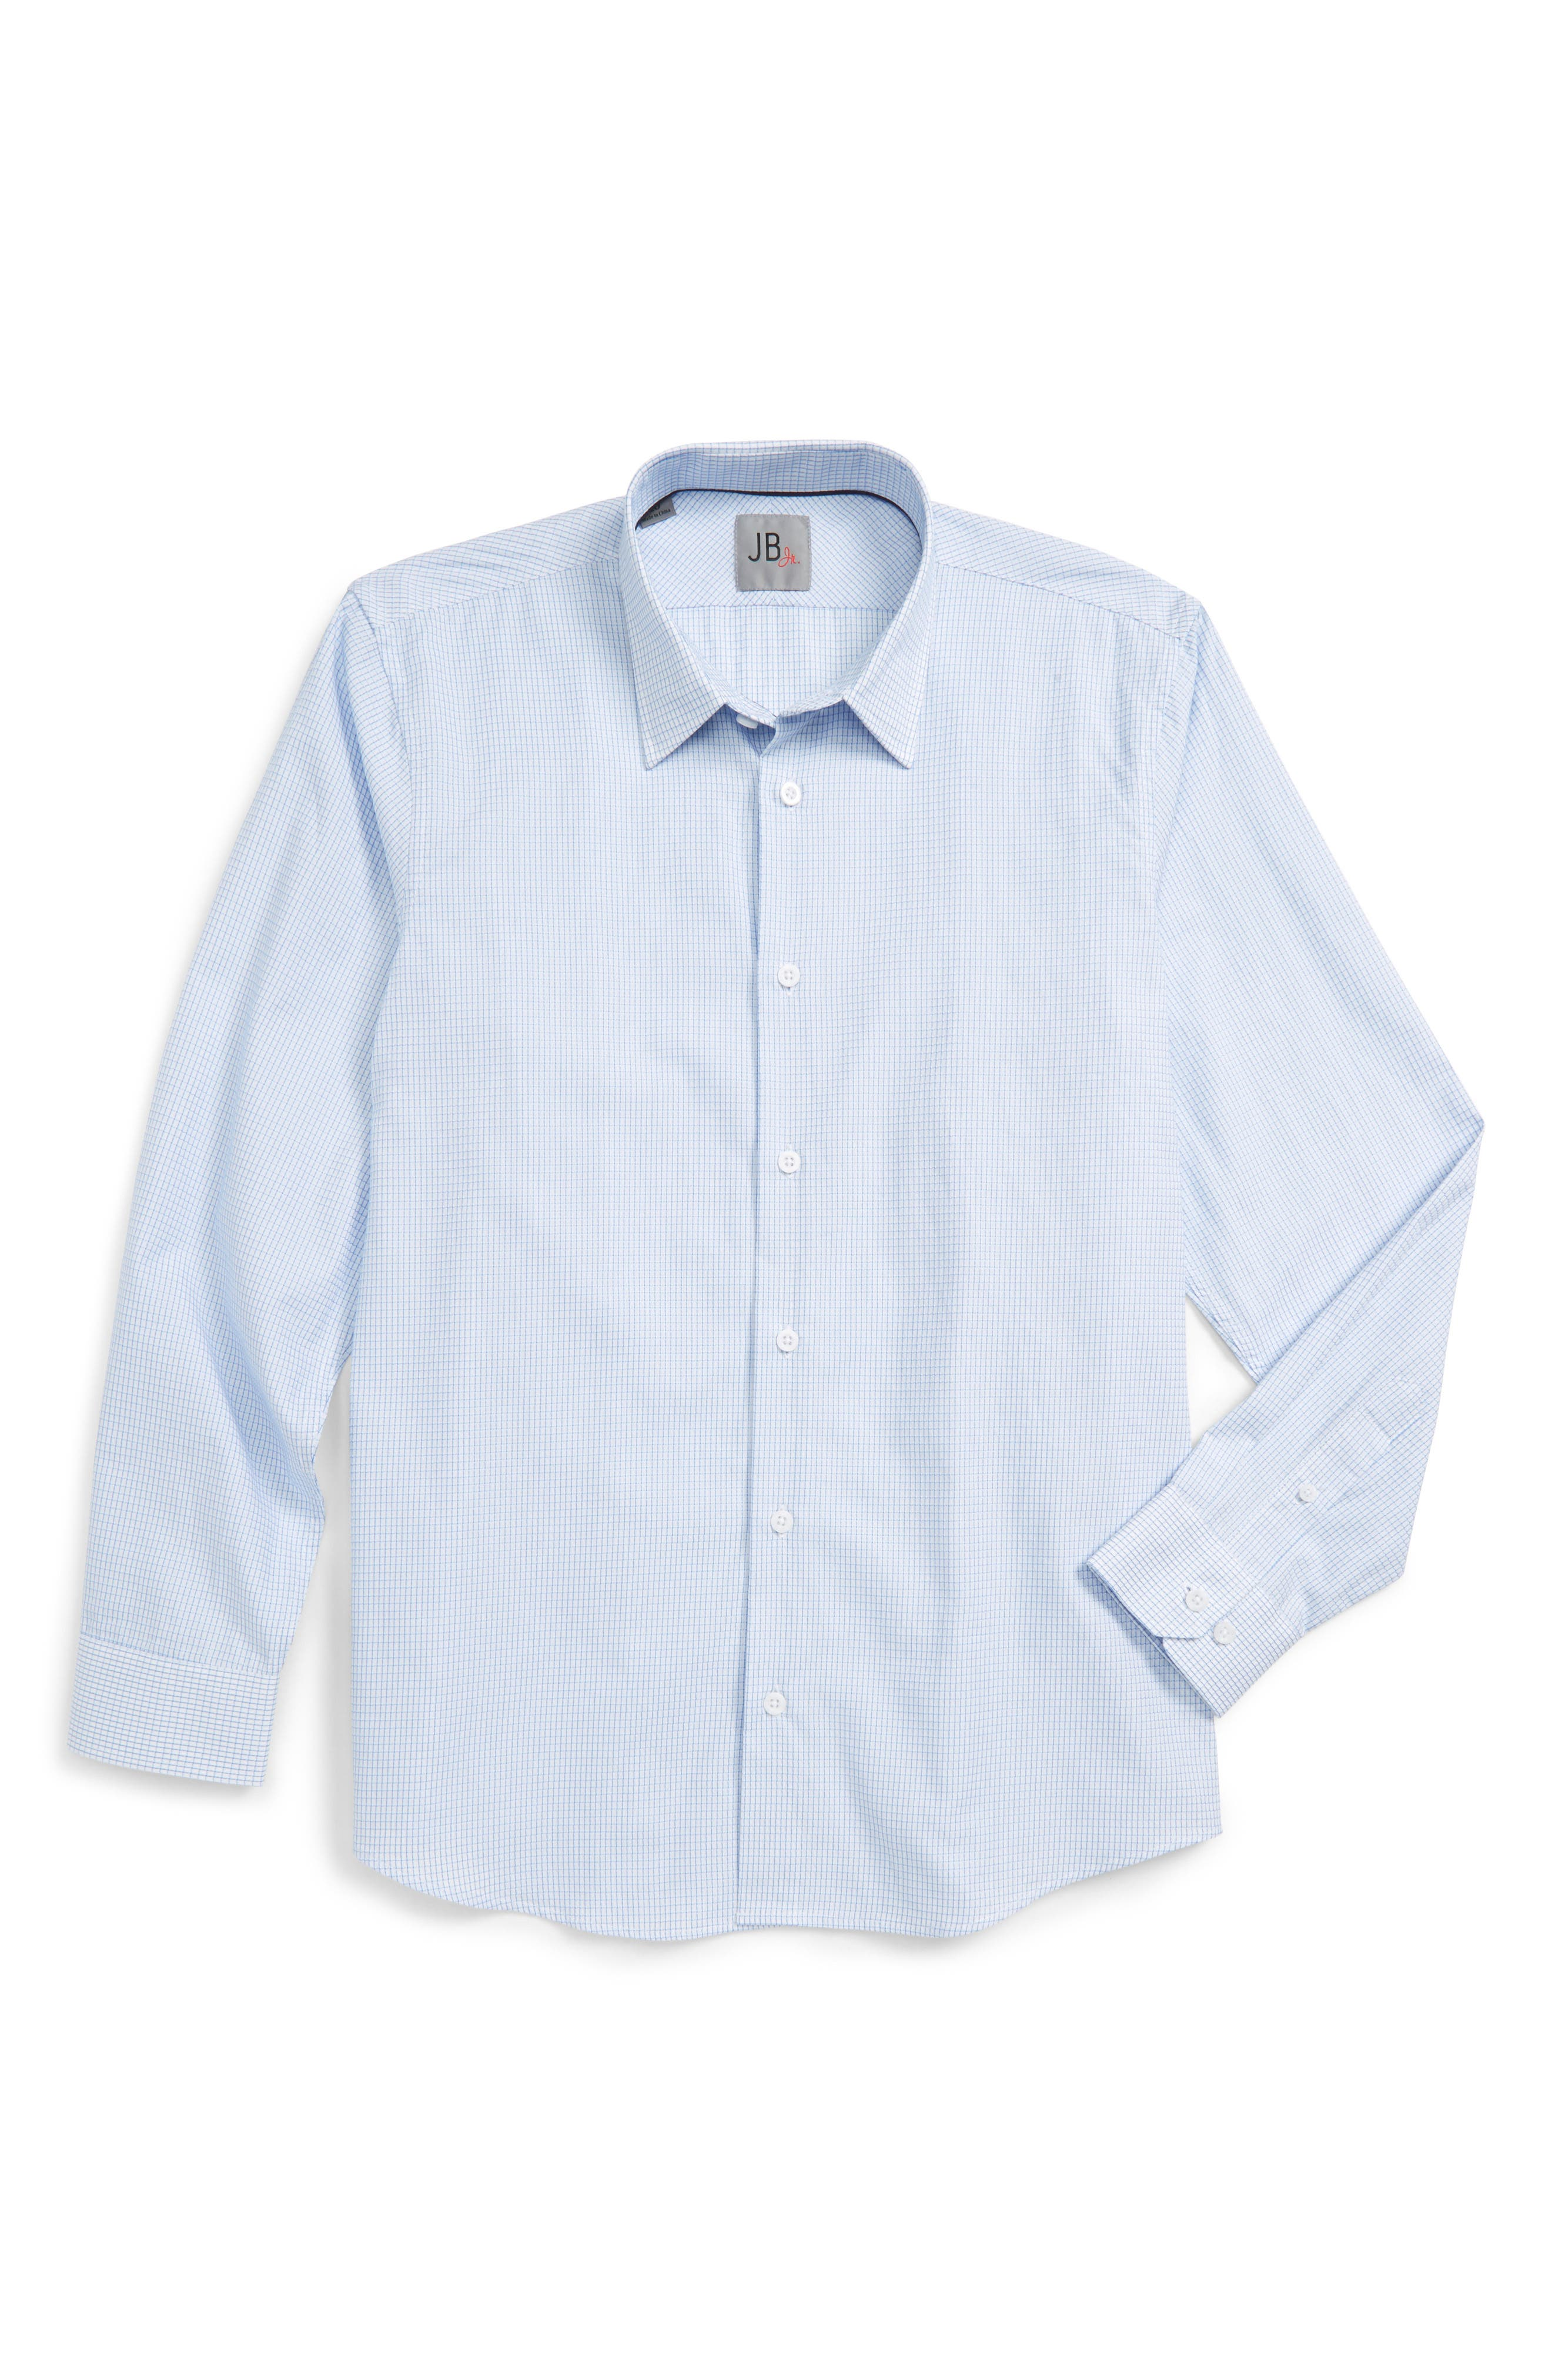 JB Jr Check Dress Shirt (Big Boys)